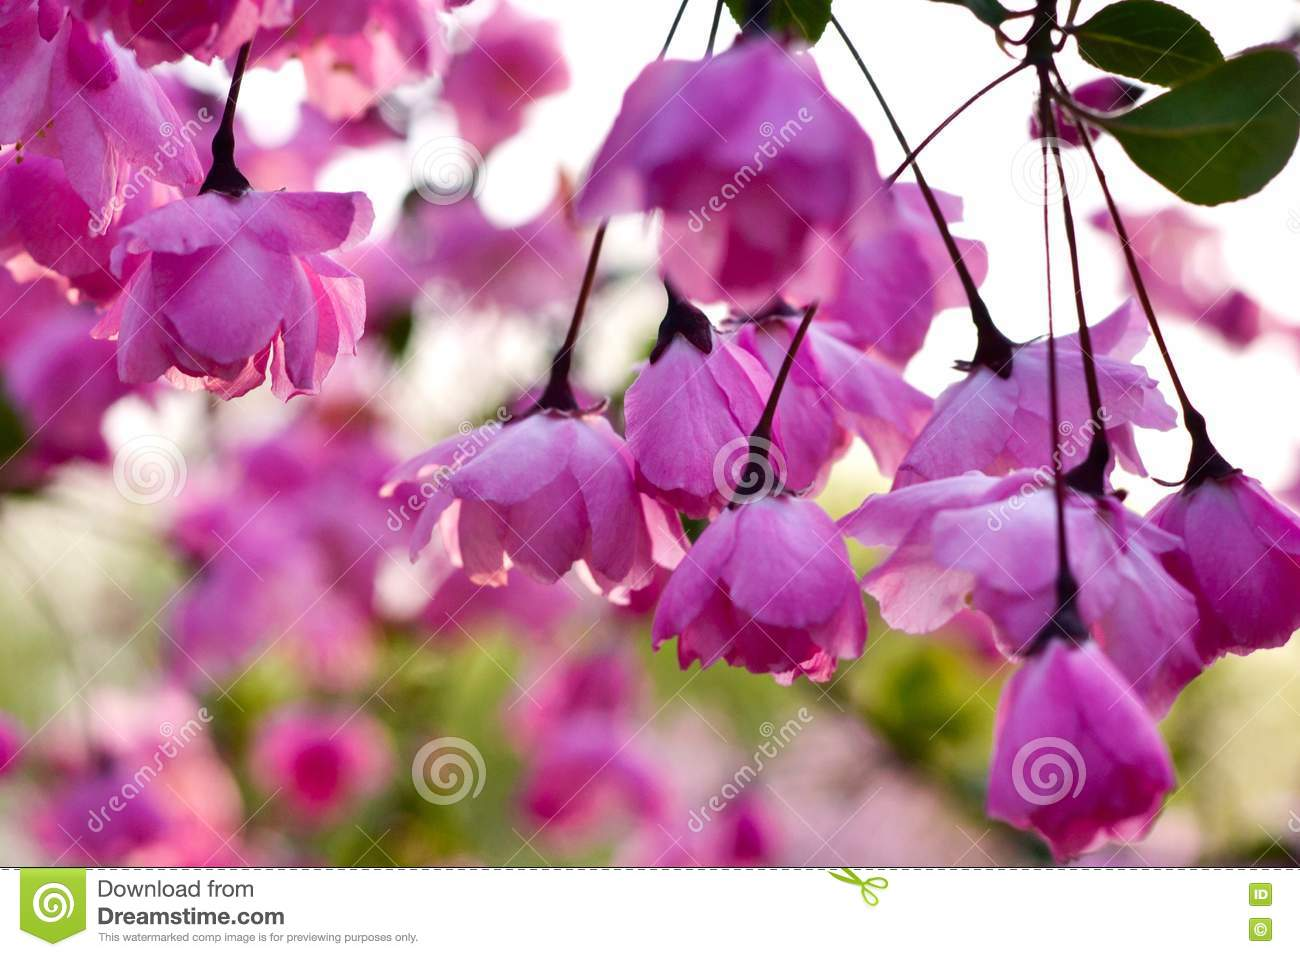 Pink hanging flowers stock photo image of flowering 71887262 pink hanging flowers mightylinksfo